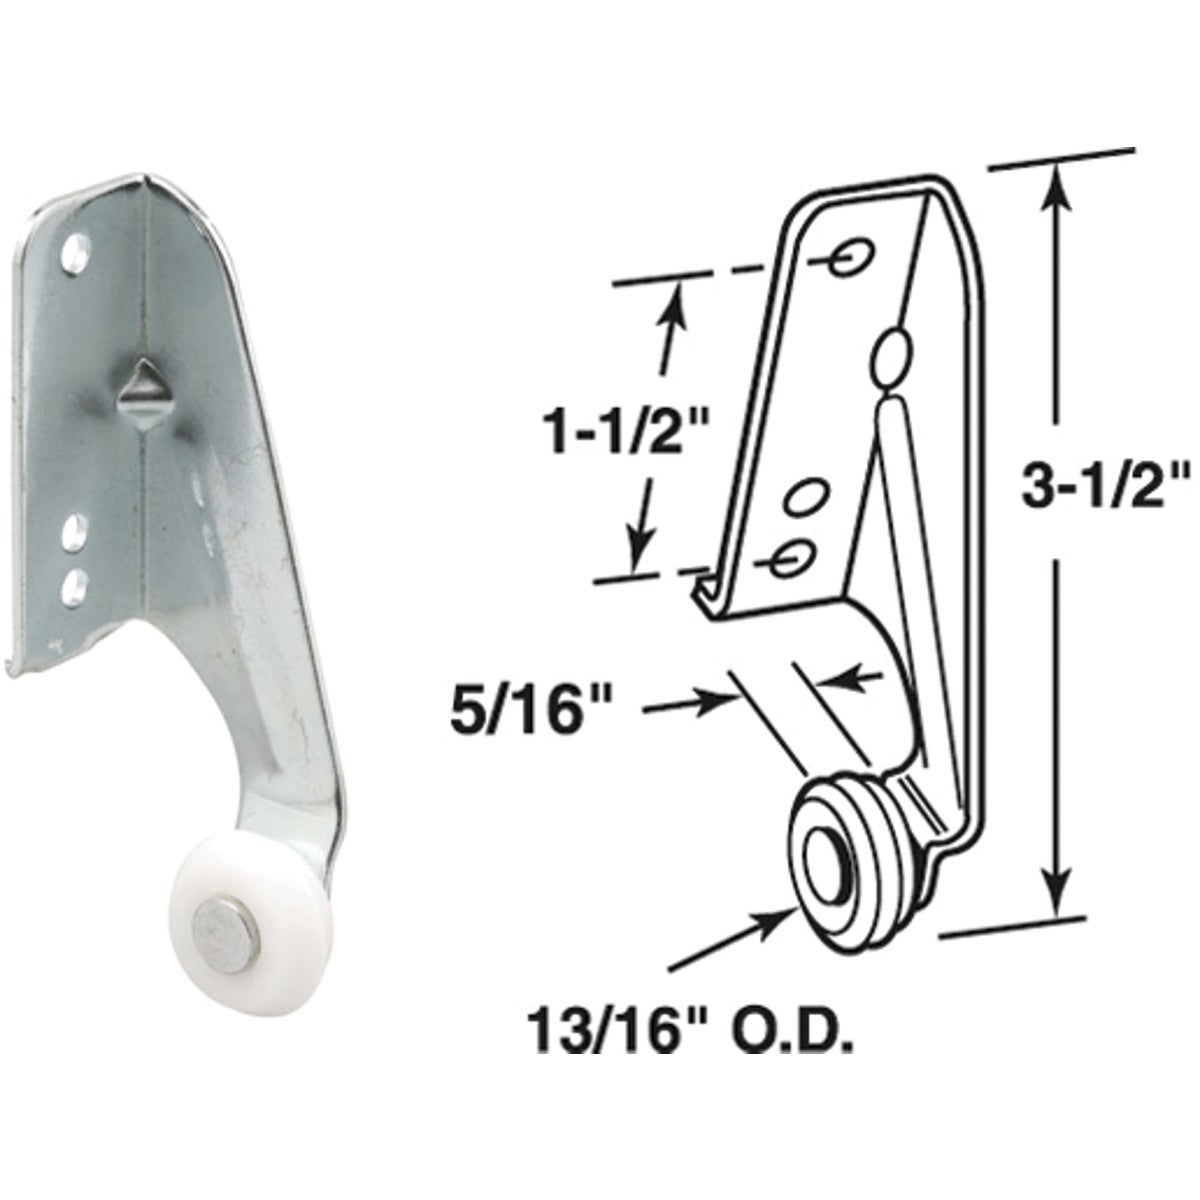 REAR ROLLER BRACKET - 223003 by Prime Line Products